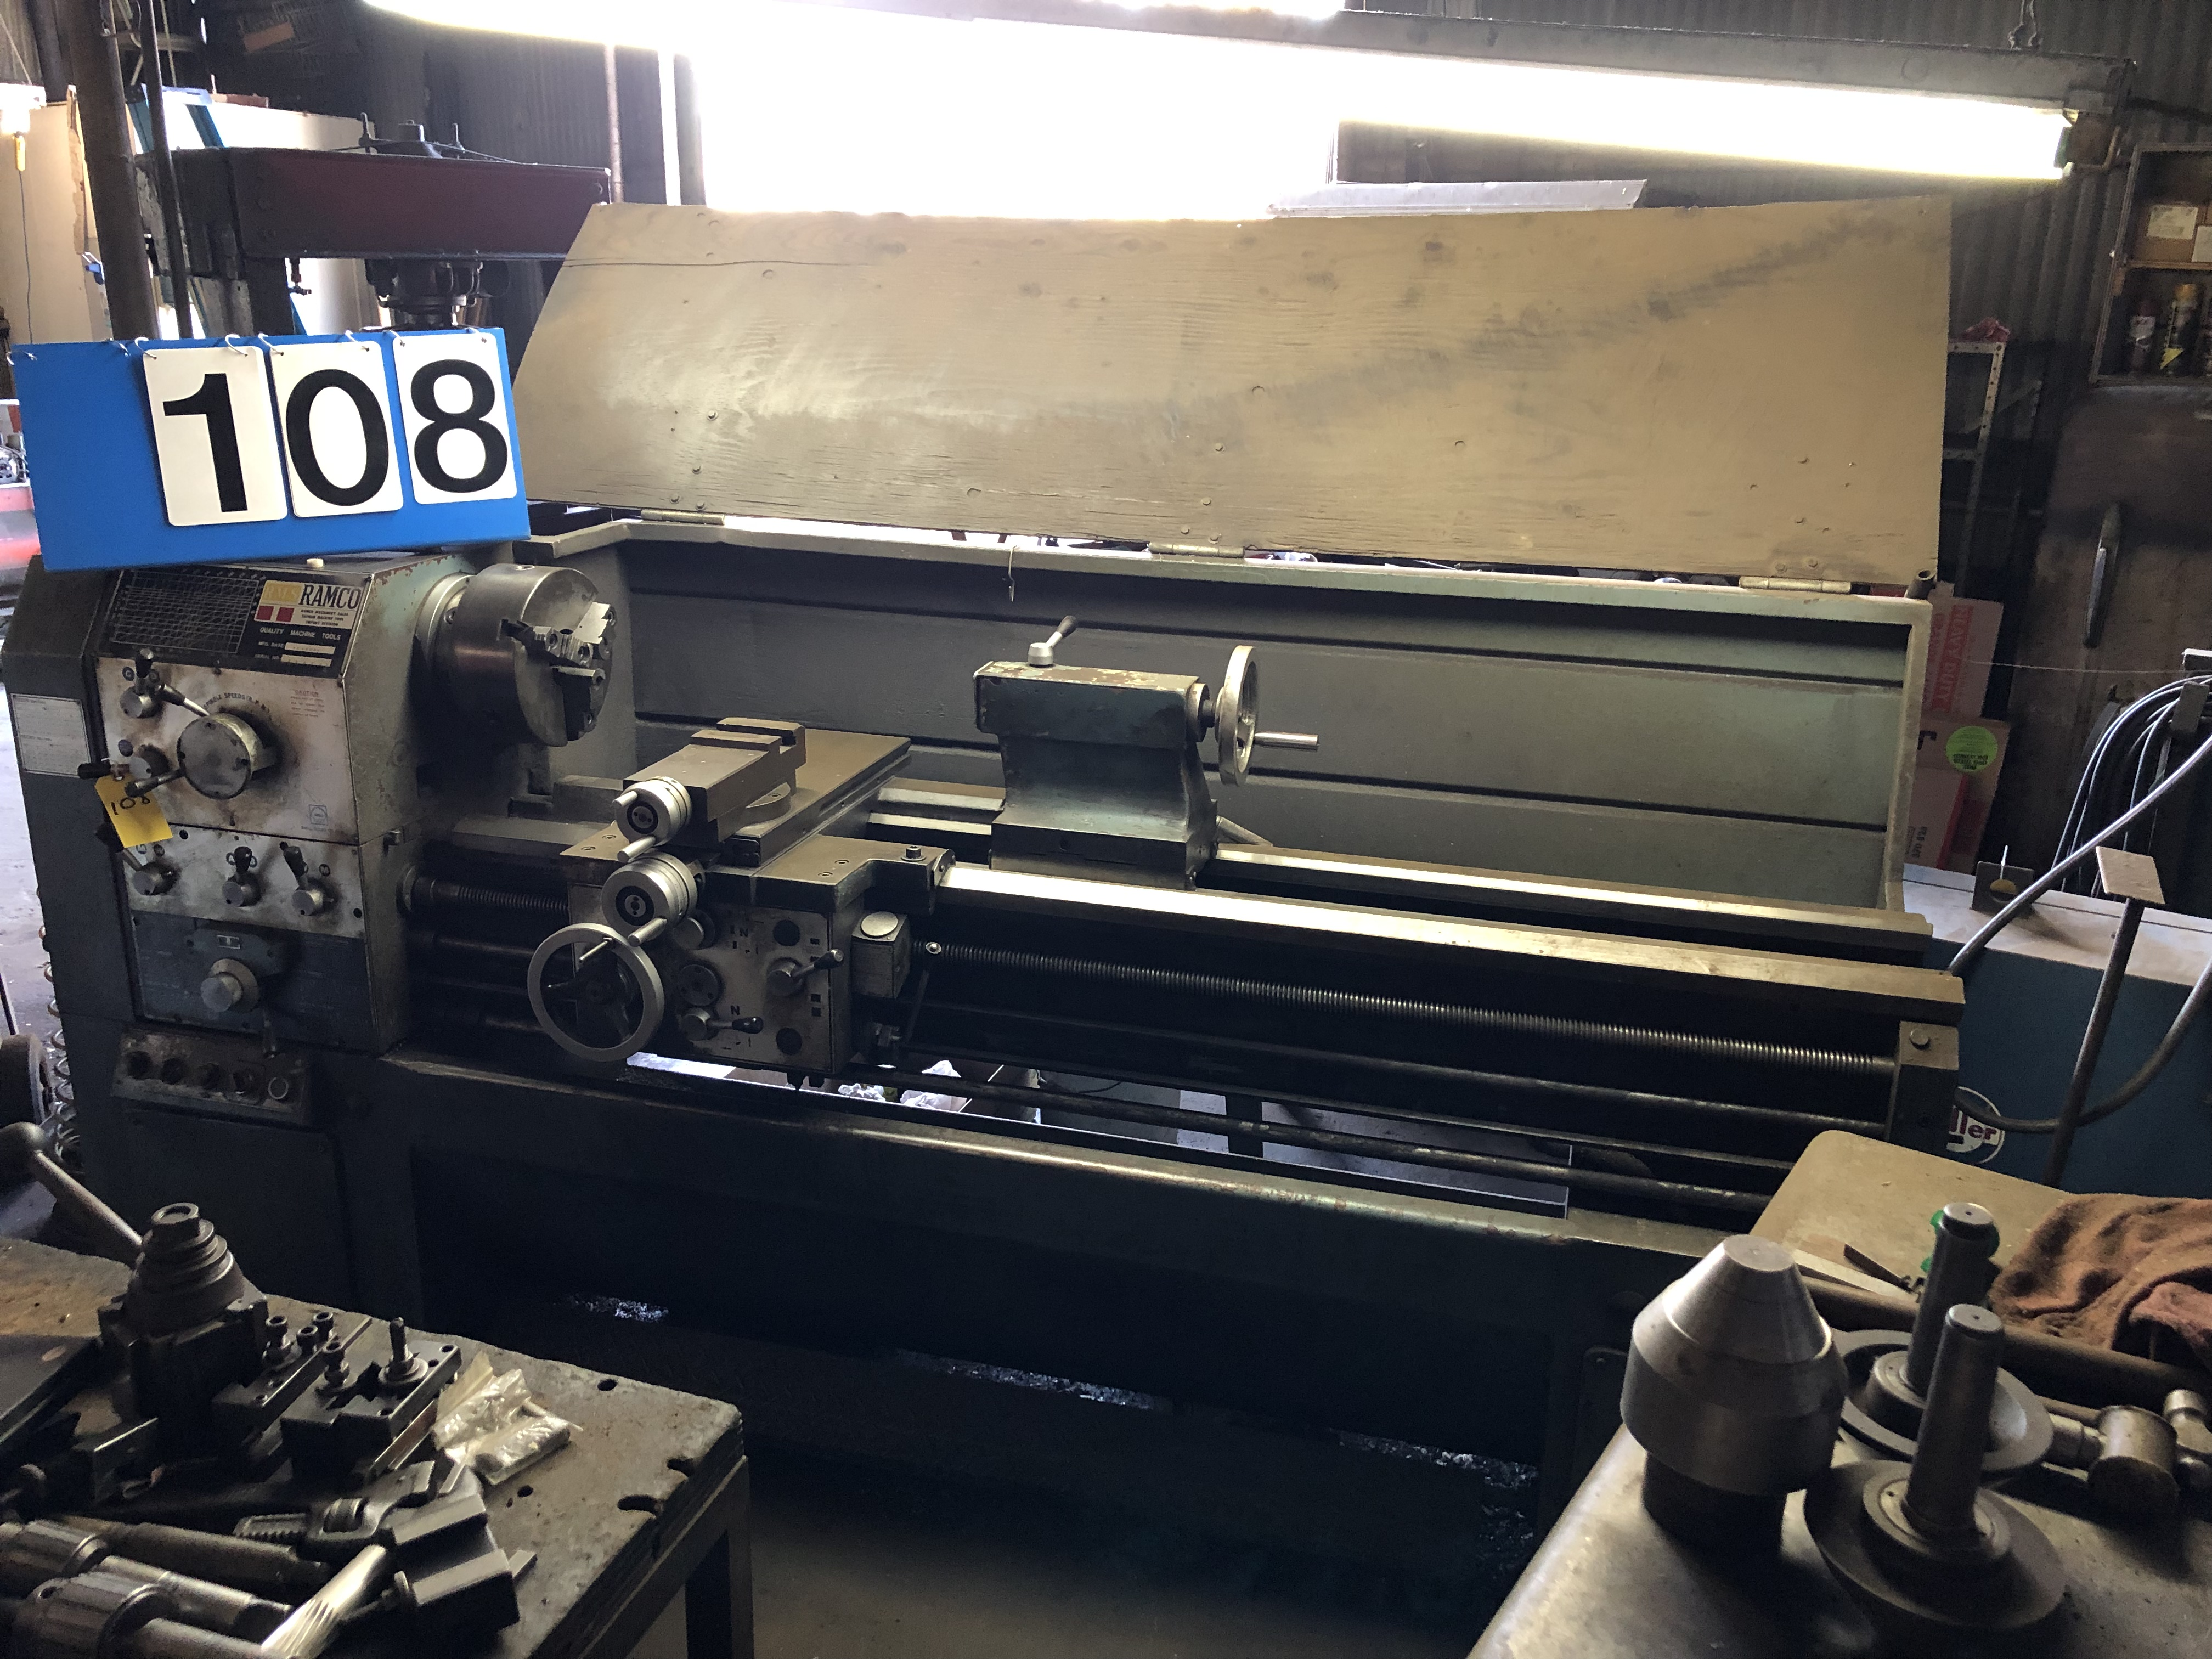 """Lot 108 - Ramco Mdl: TK 430 XL Lathe, 17"""" x 60"""", S/N: 71072, 10"""" 3-Jaw, Quick Change Tool Post w/ 8 Holders,"""